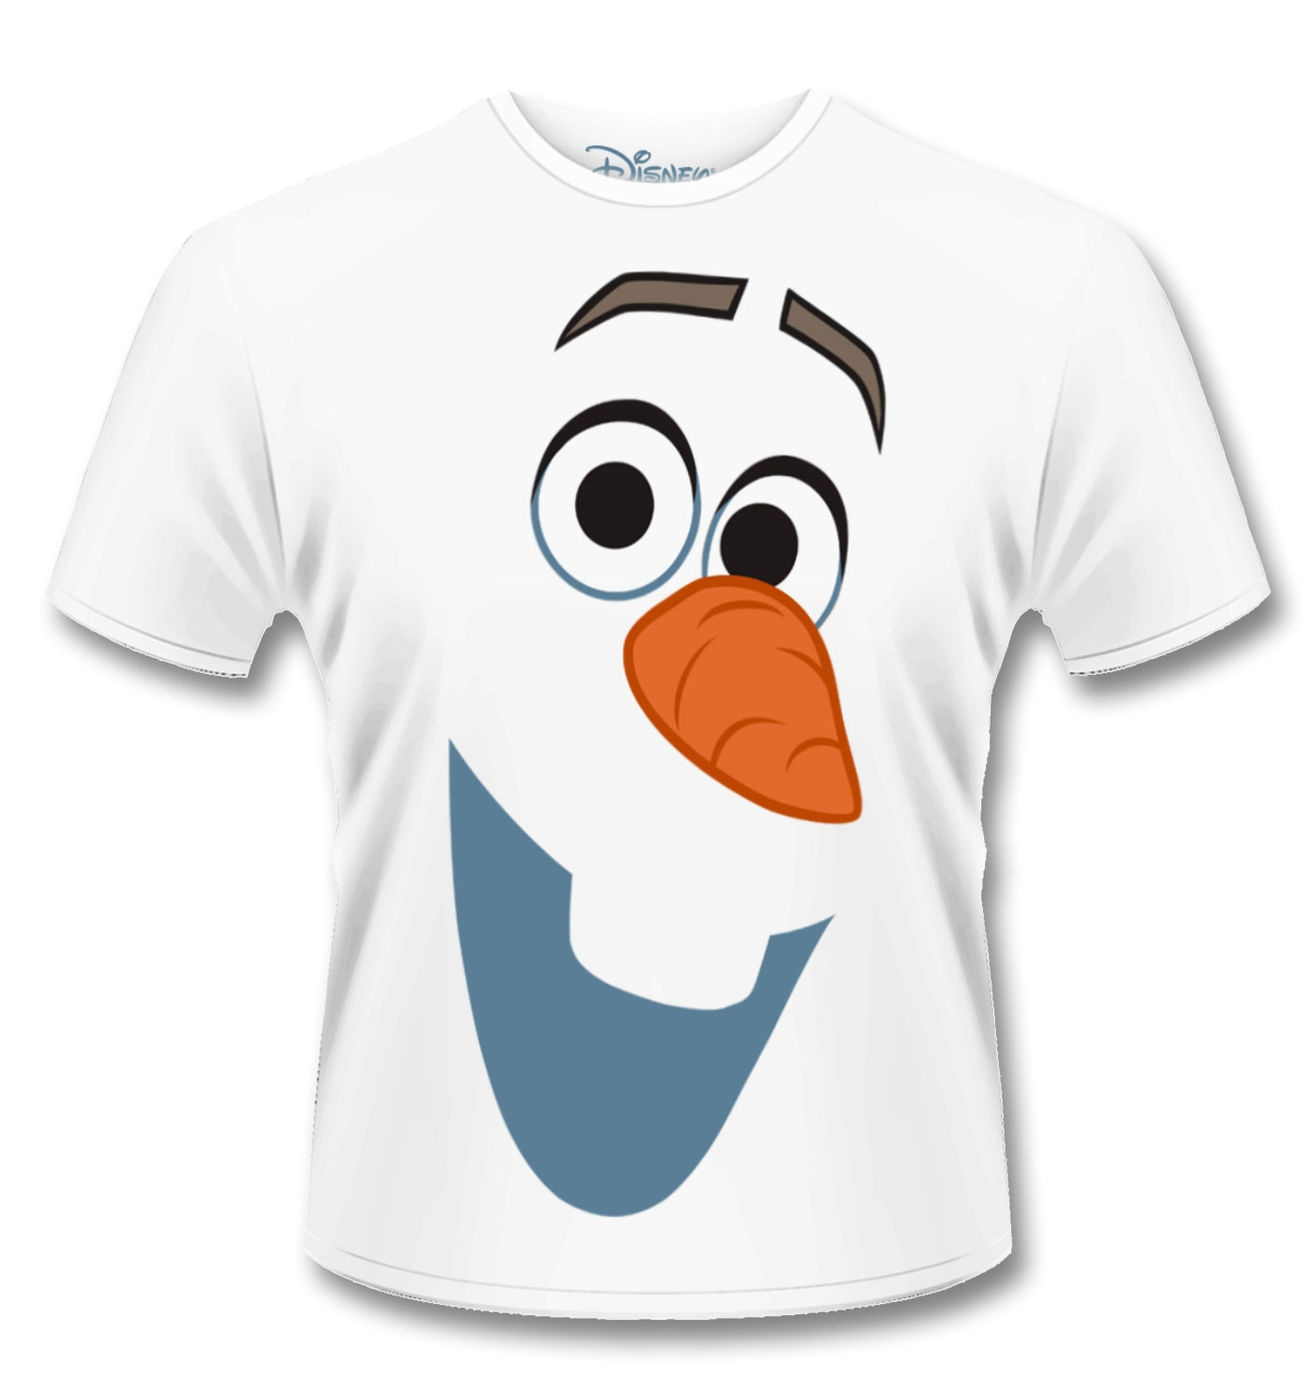 Official Disney Frozen Olaf Face T Shirt Somethinggeeky